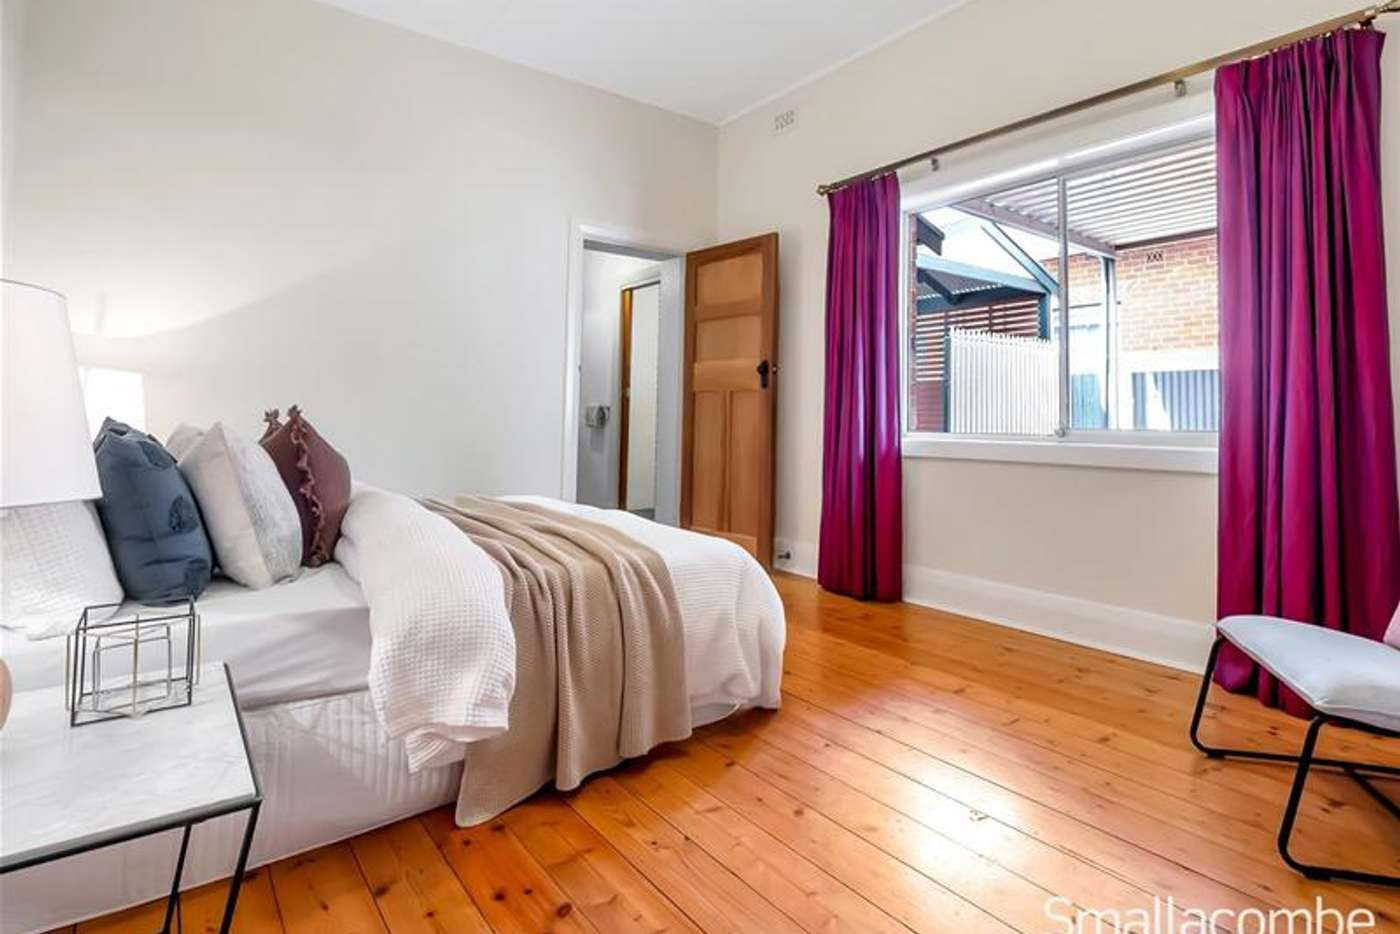 Sixth view of Homely house listing, 34 Rozells Avenue, Colonel Light Gardens SA 5041